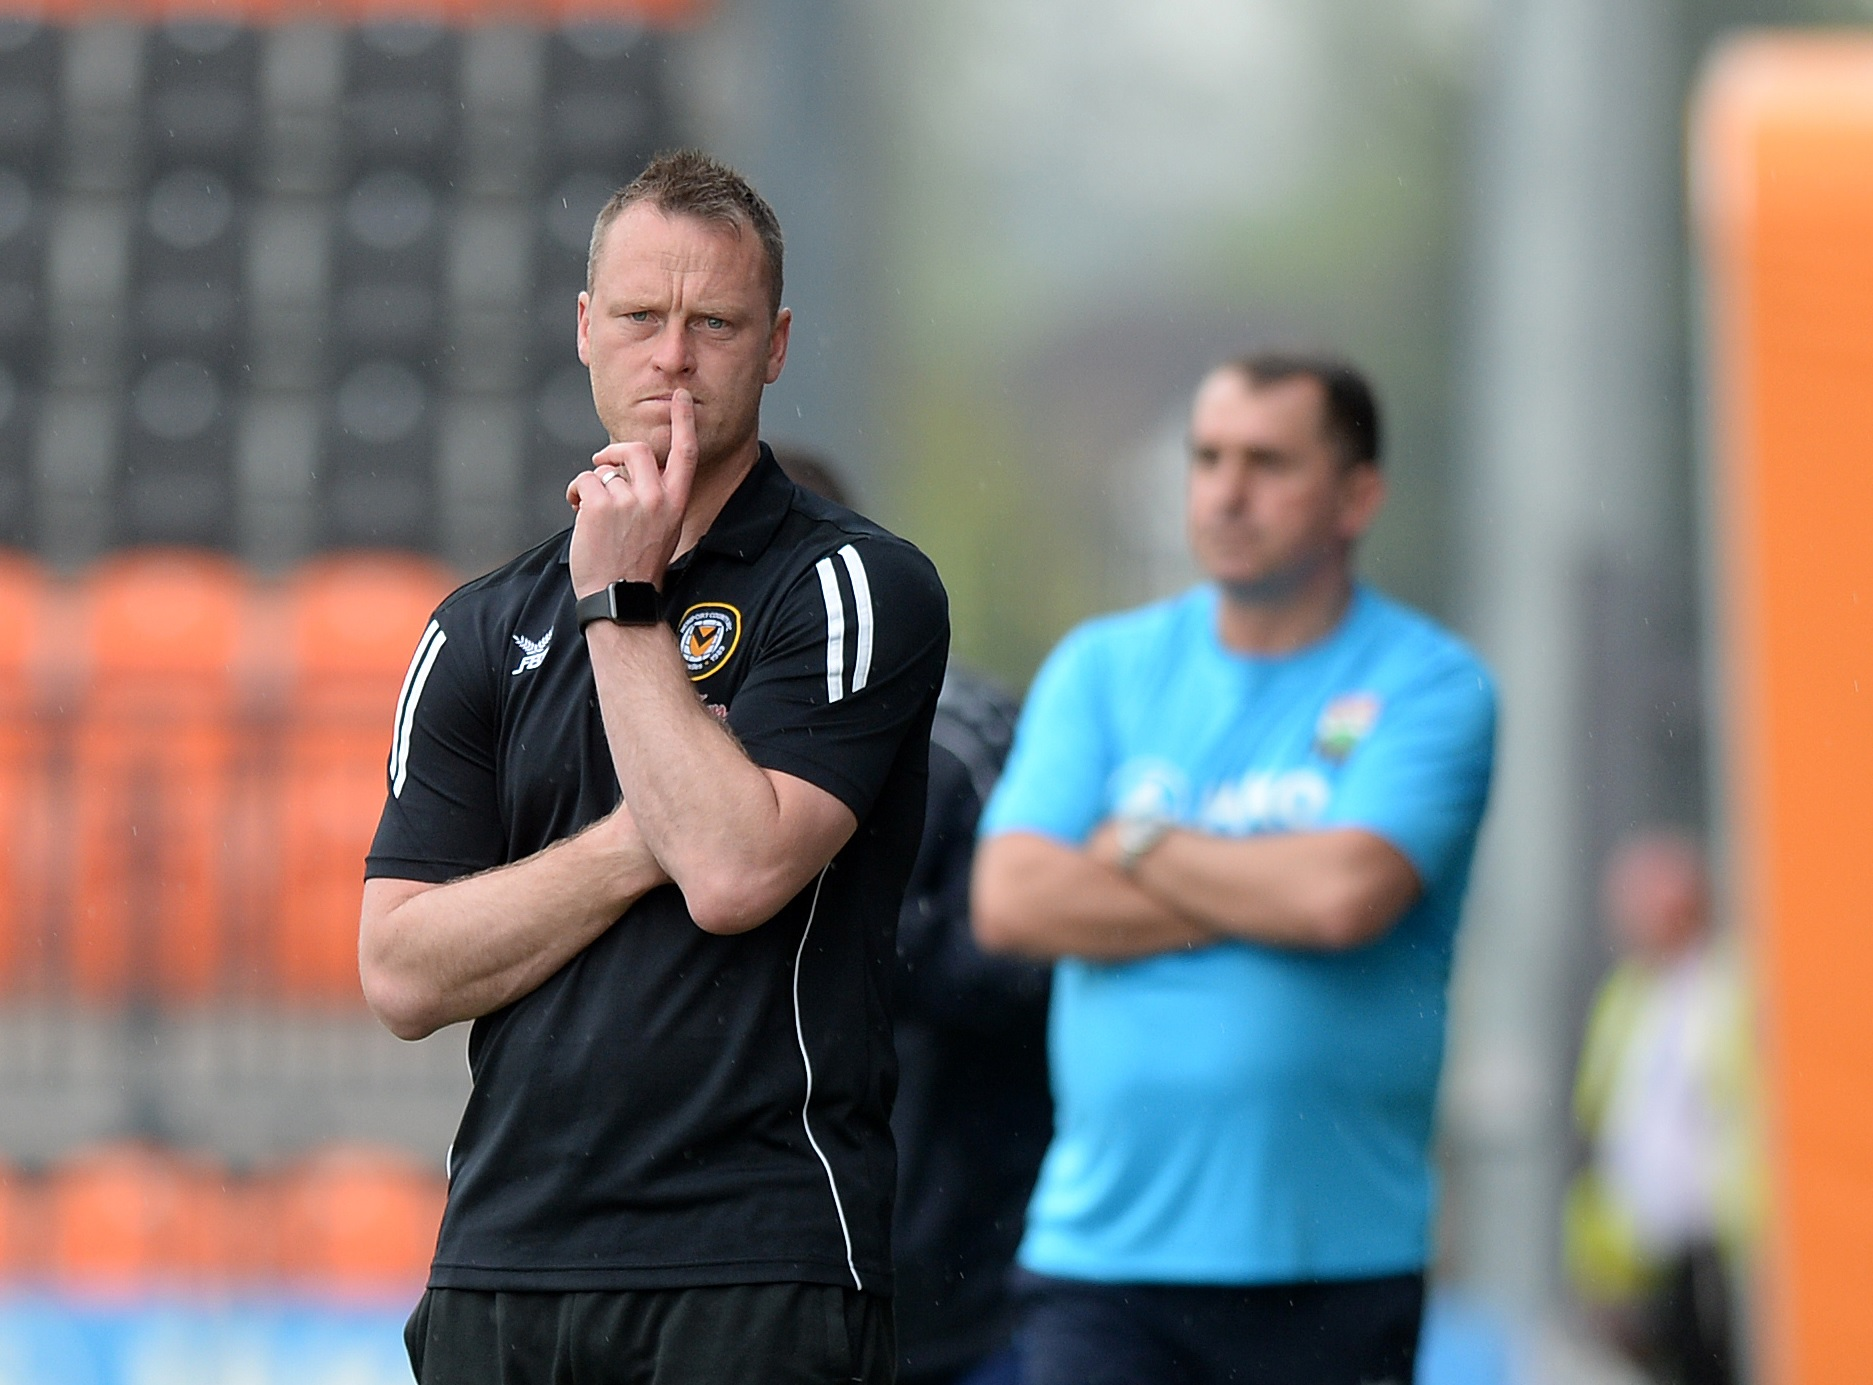 ANGRY: Newport County manager Michael Flynn was critical of his side's performance at Barnet. Picture: Huw Evans Agency